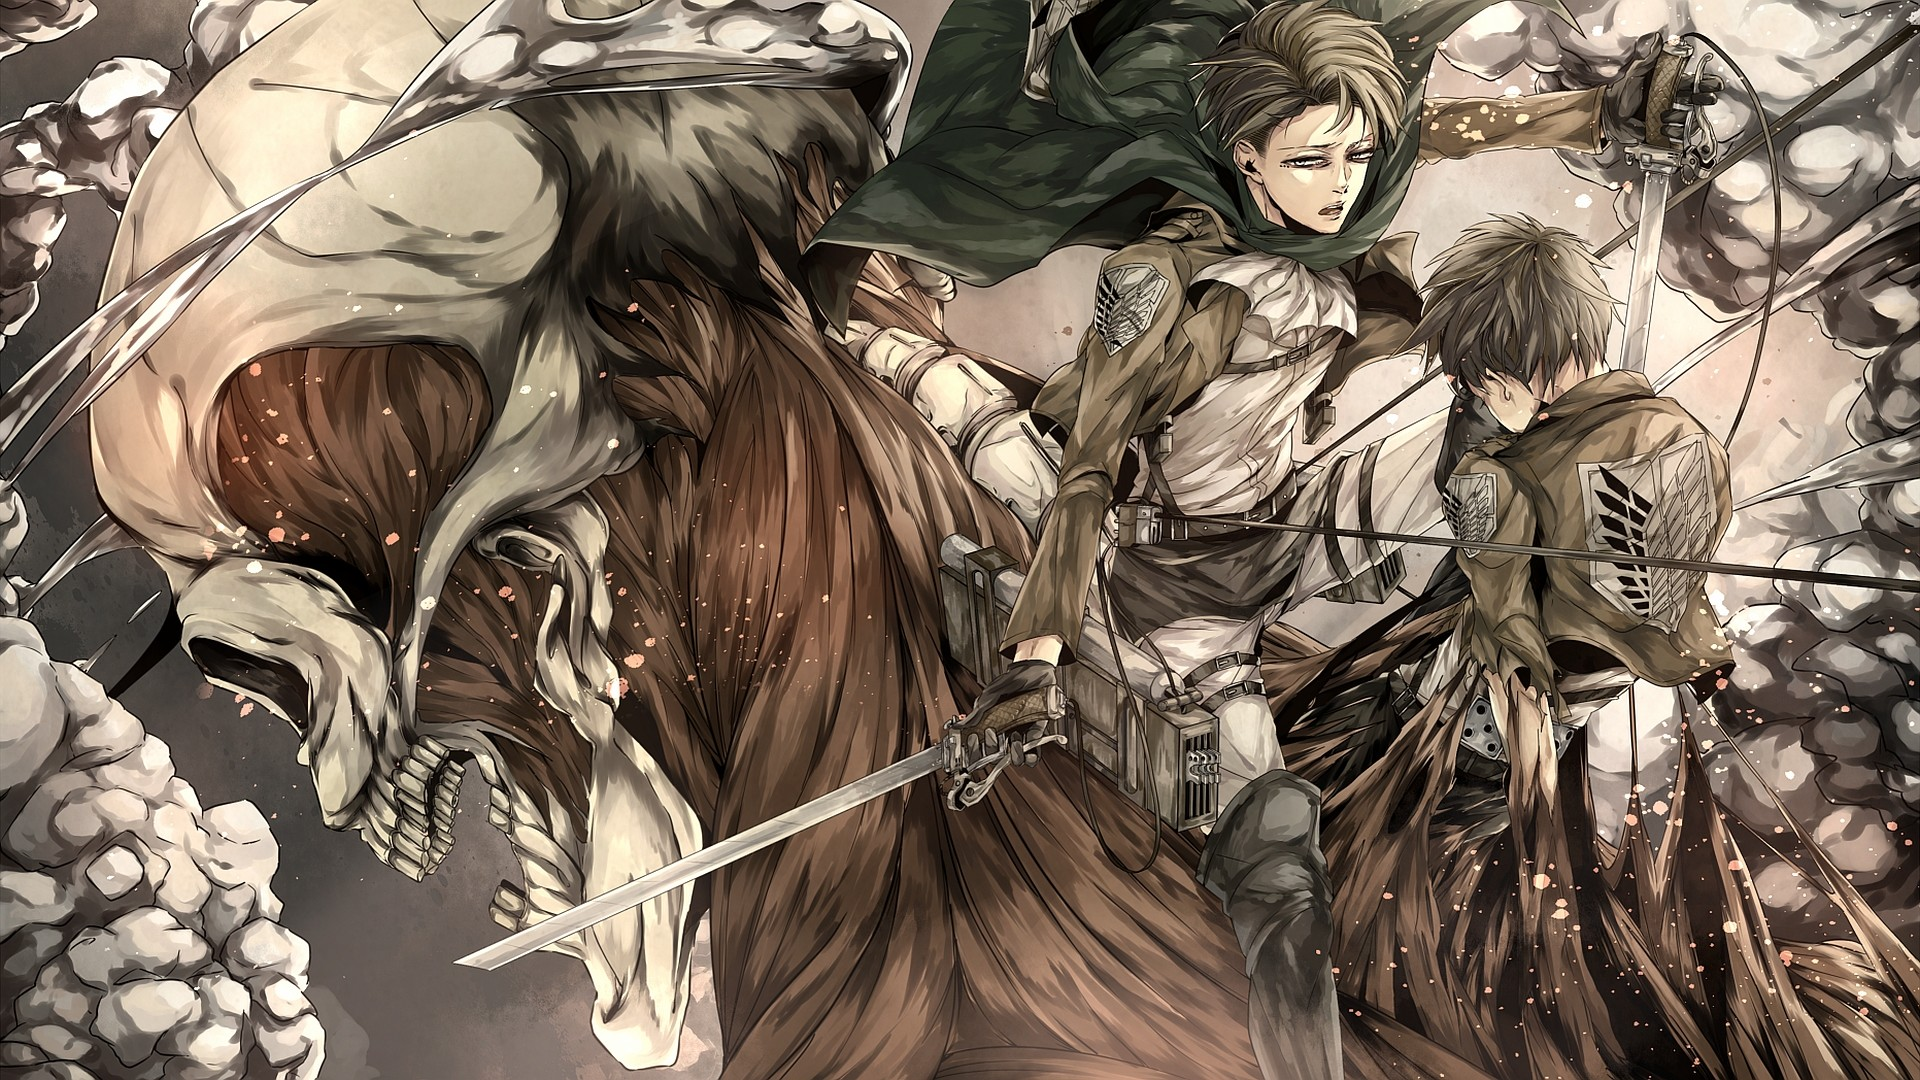 Yuriko nakao/getty images attack on titan is a popular anime series that has also spawned movies and video games. Attack on Titan Live Wallpaper (76+ images)